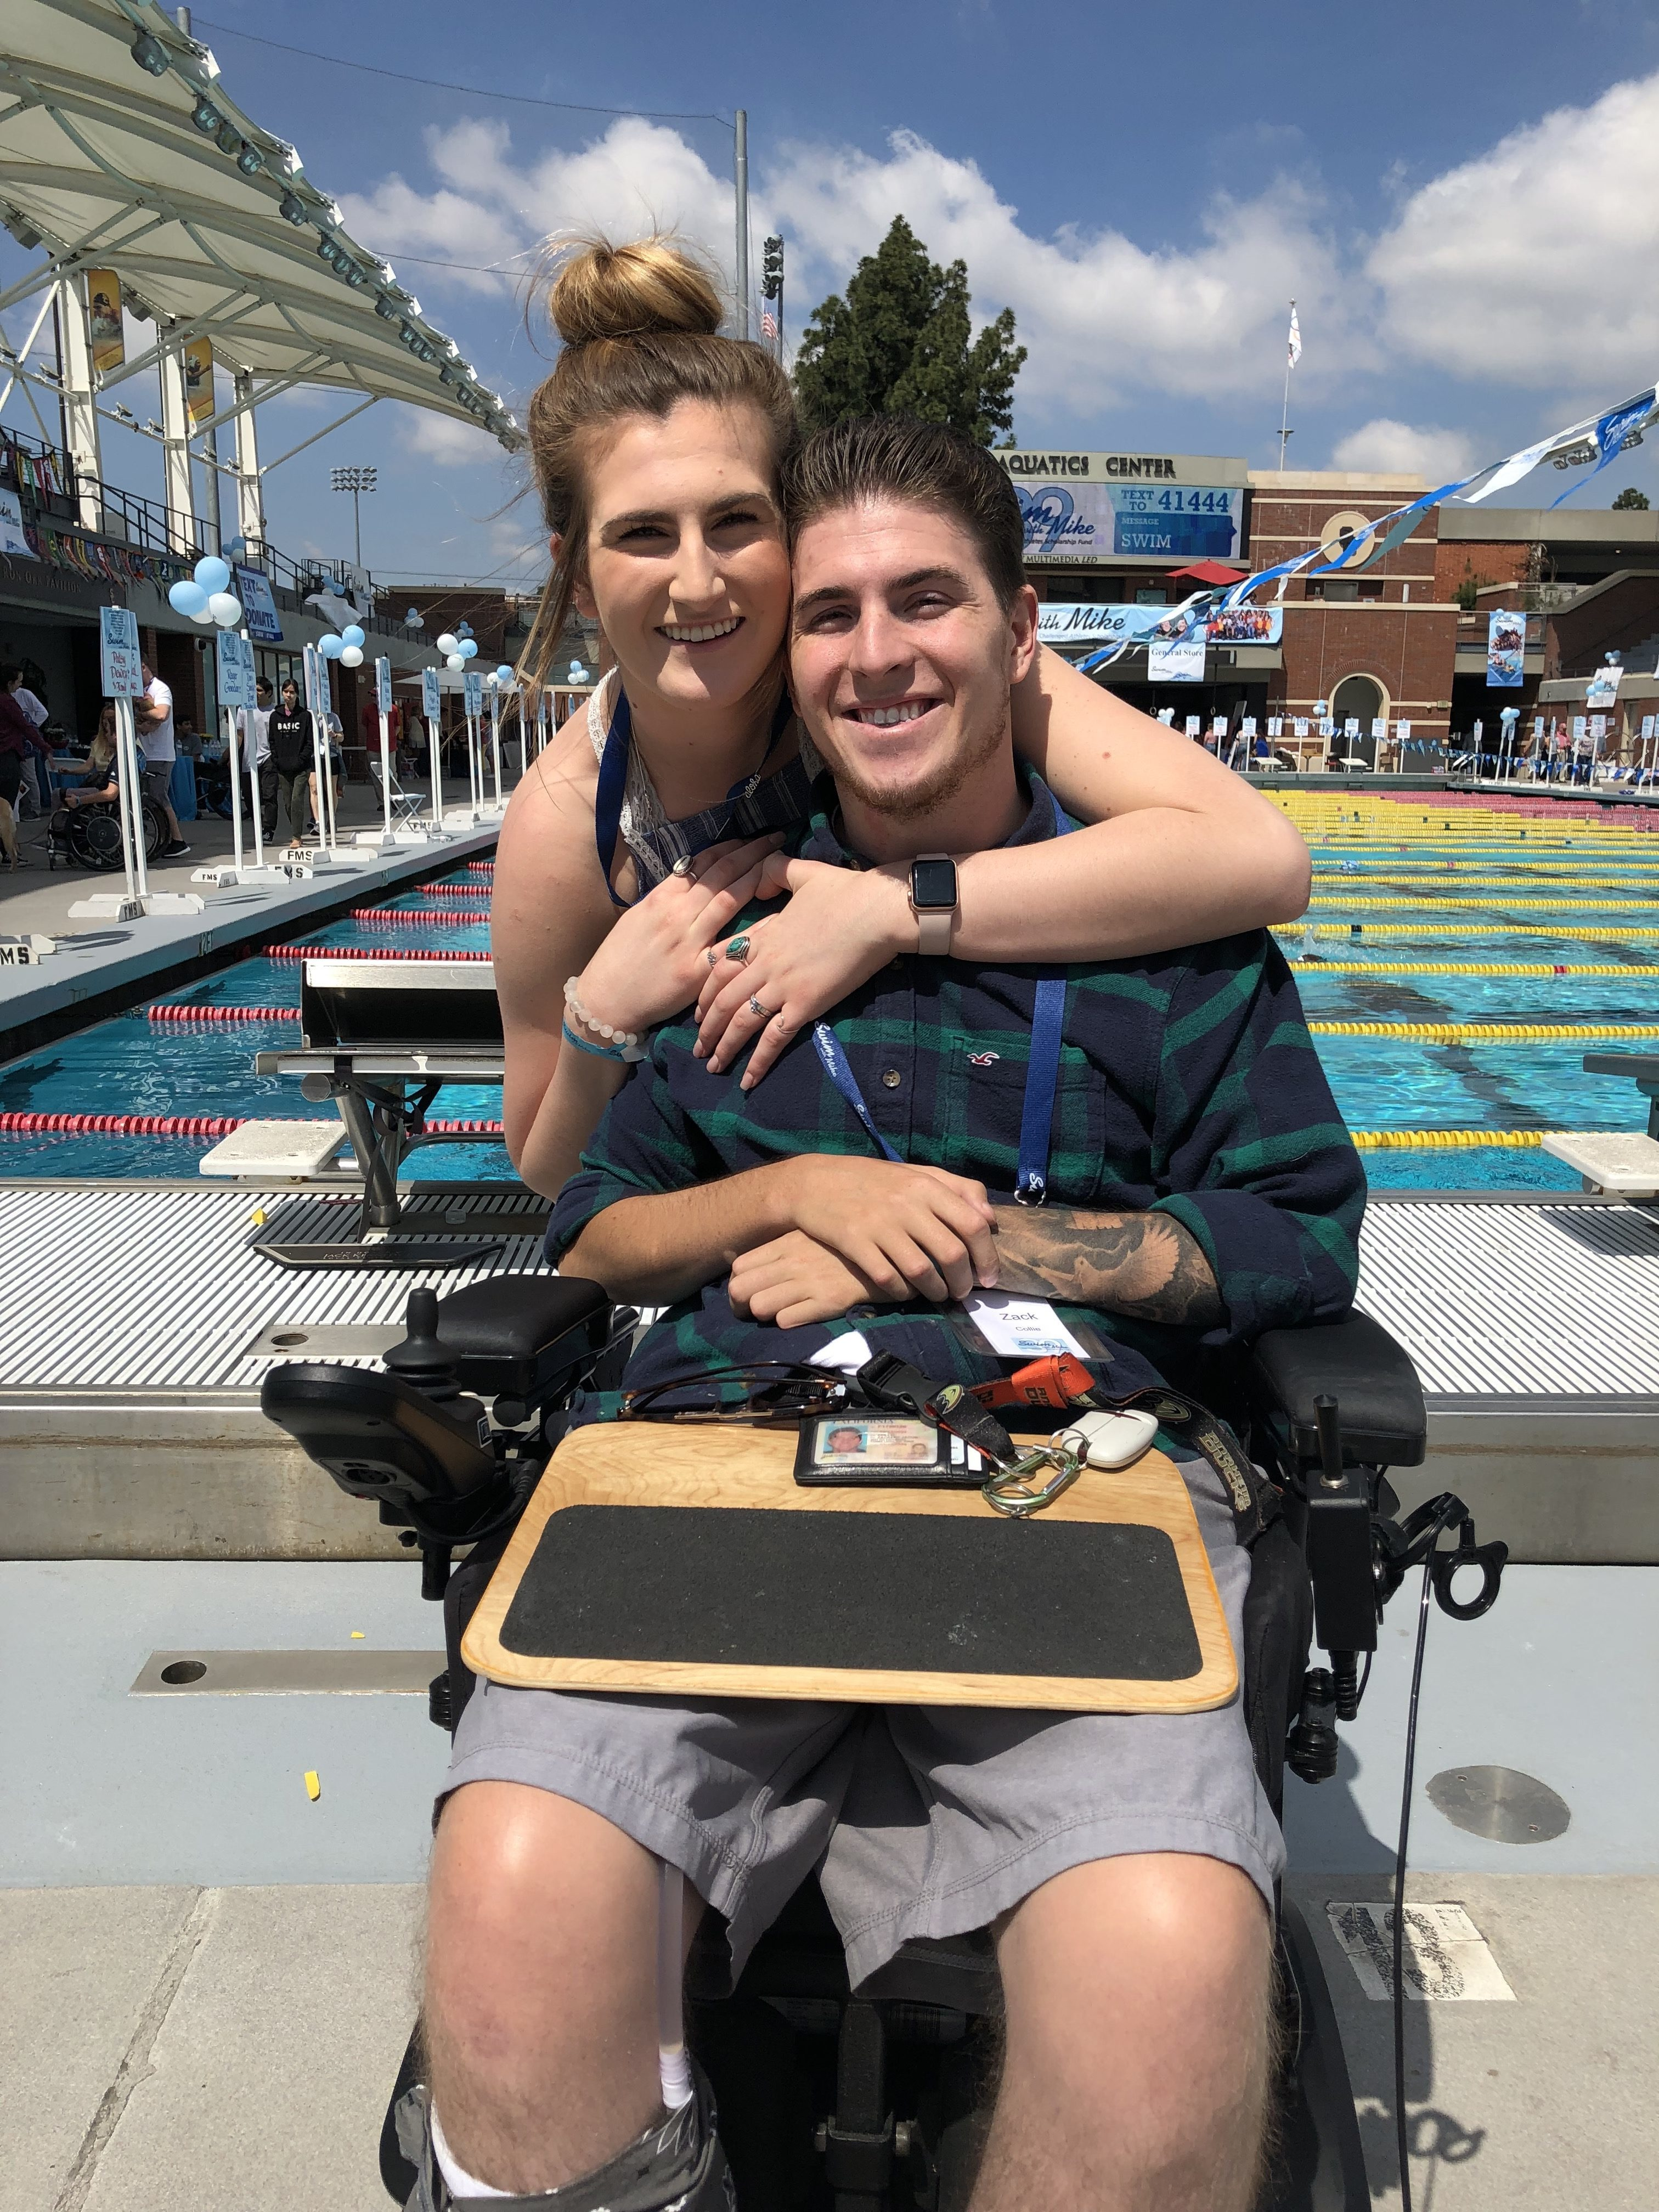 Zach and partner in front of pool